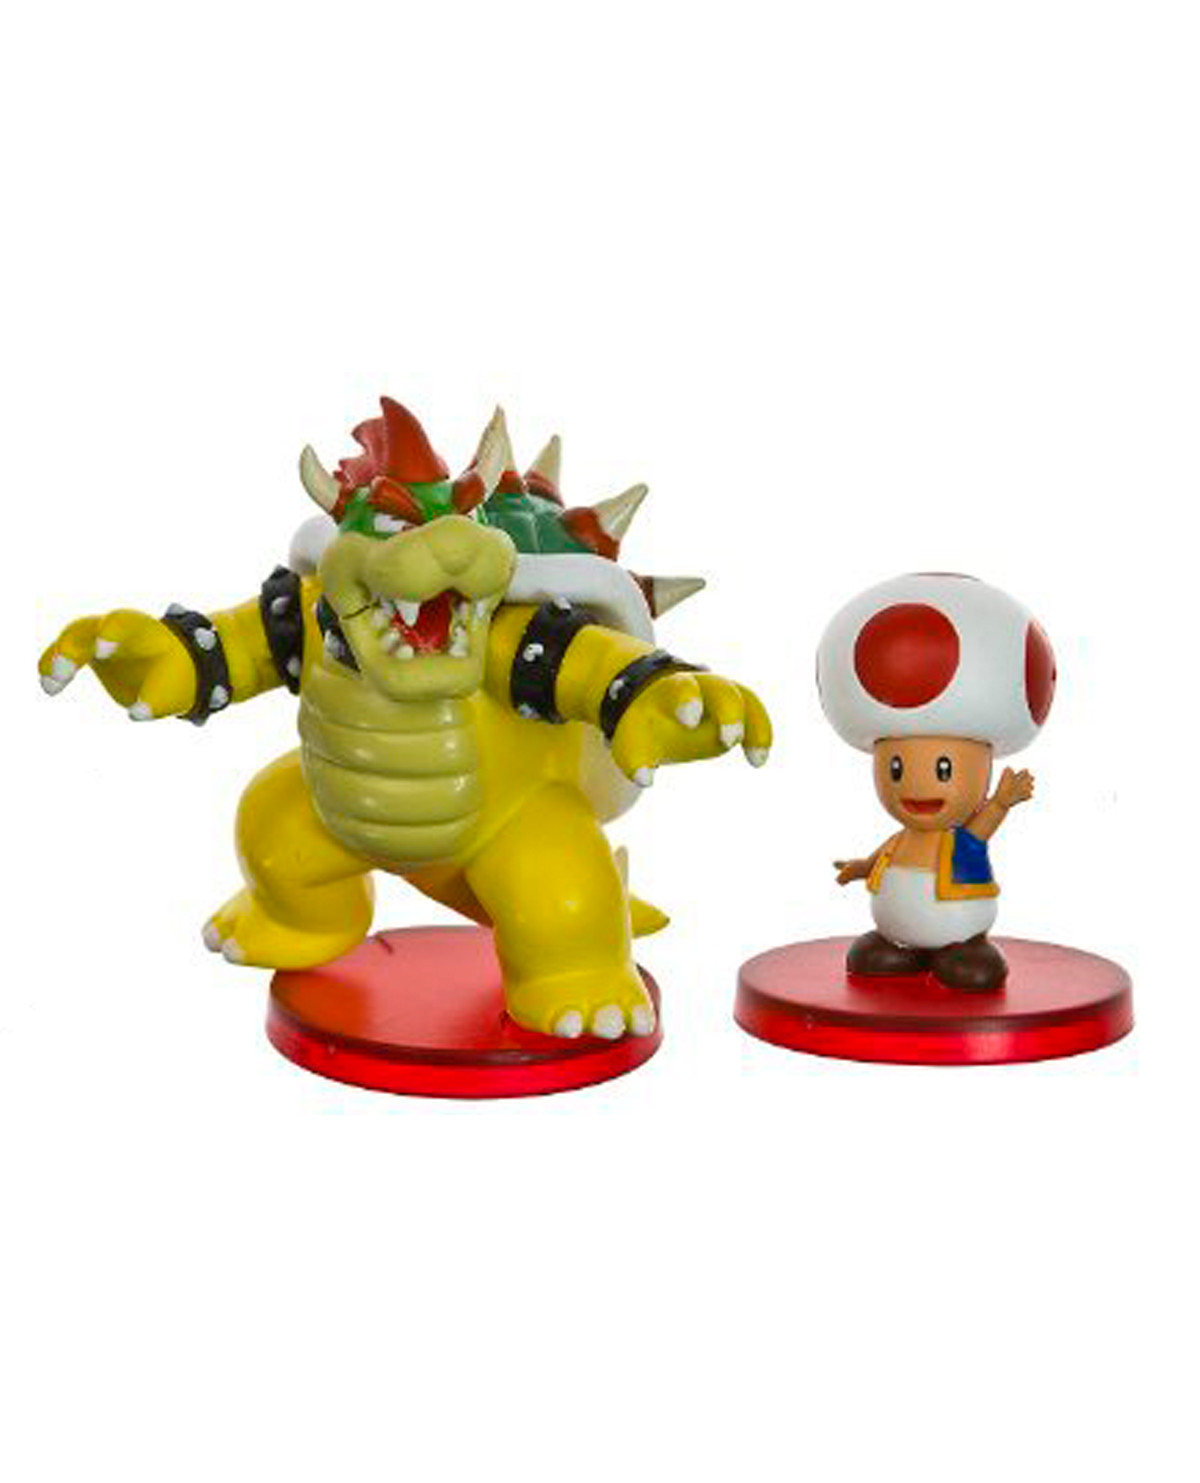 FIGURAS COLECCIONABLES BOWSER Y TOAD para PRO - GamePlanet 338a61f77f1